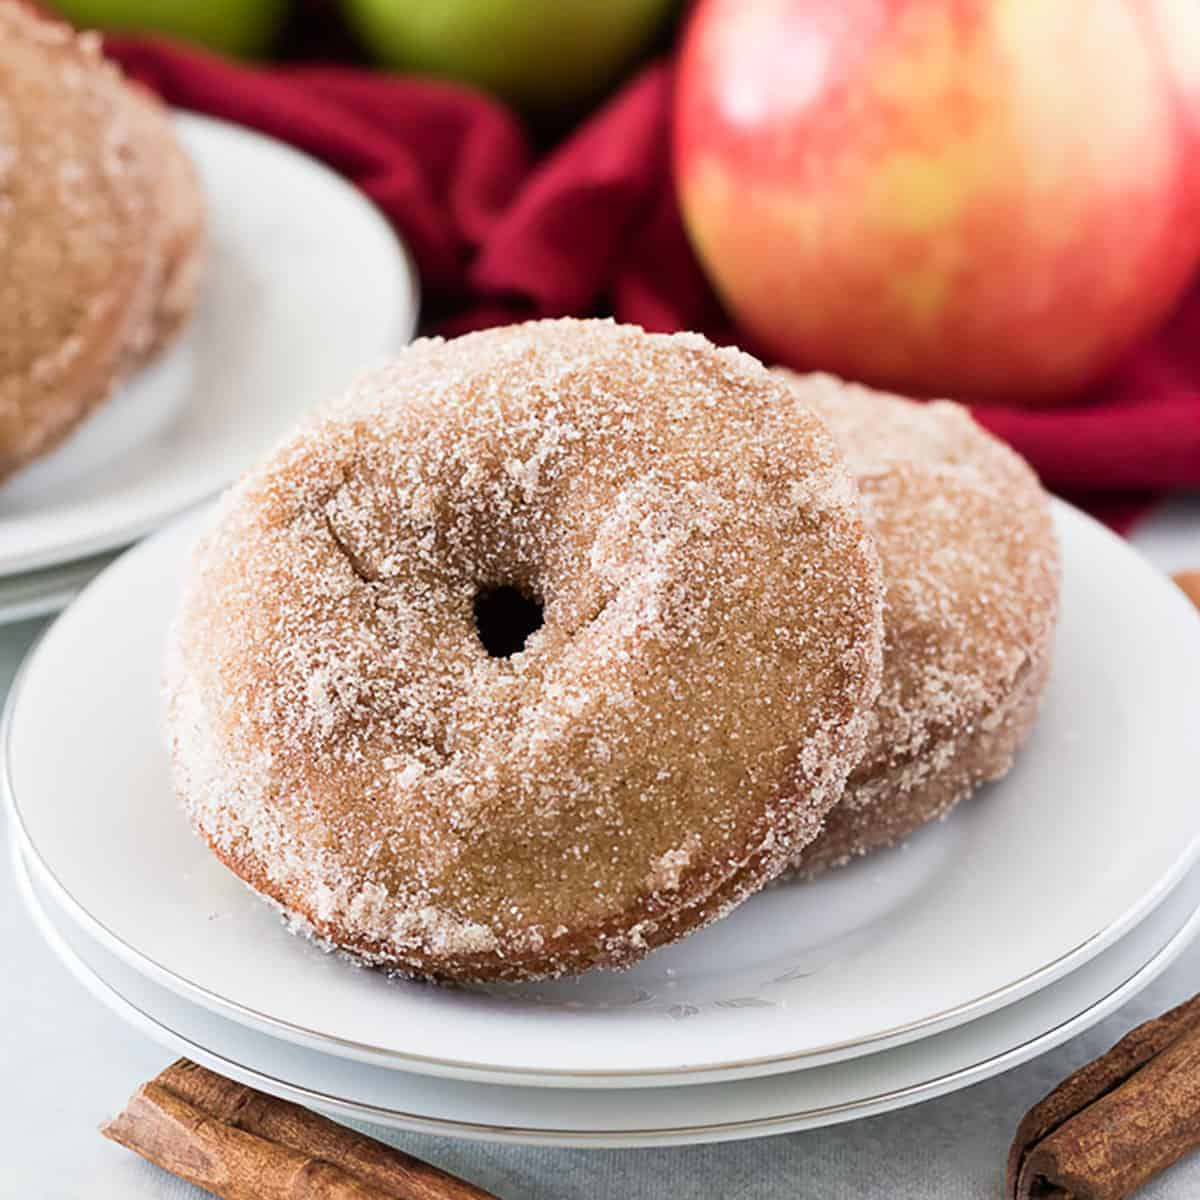 Two apple cider donuts on a white plate.